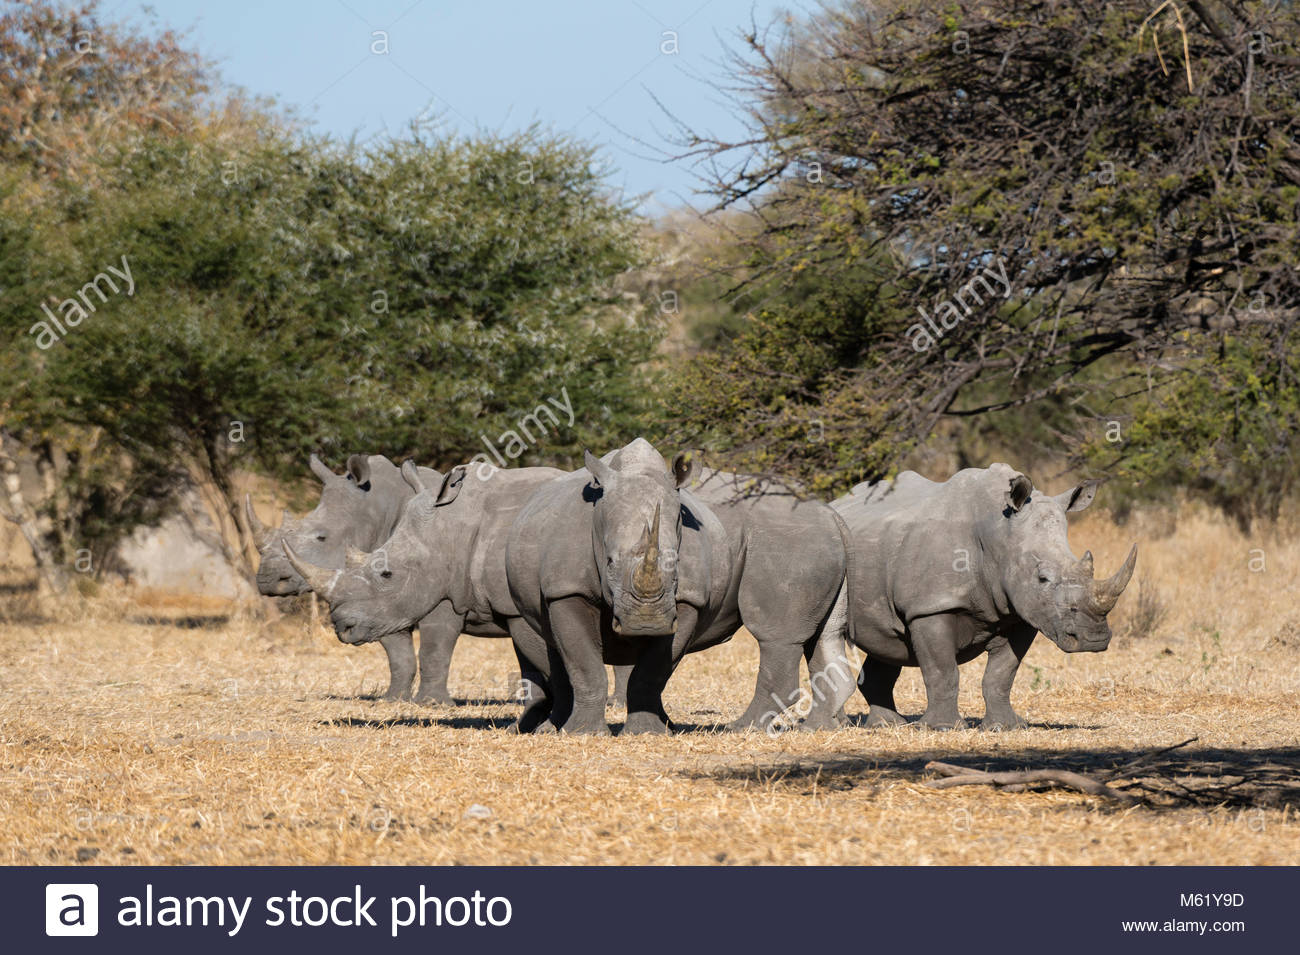 A group of four white rhinoceroses, Ceratotherium simum, standing in the savannah. - Stock Photo